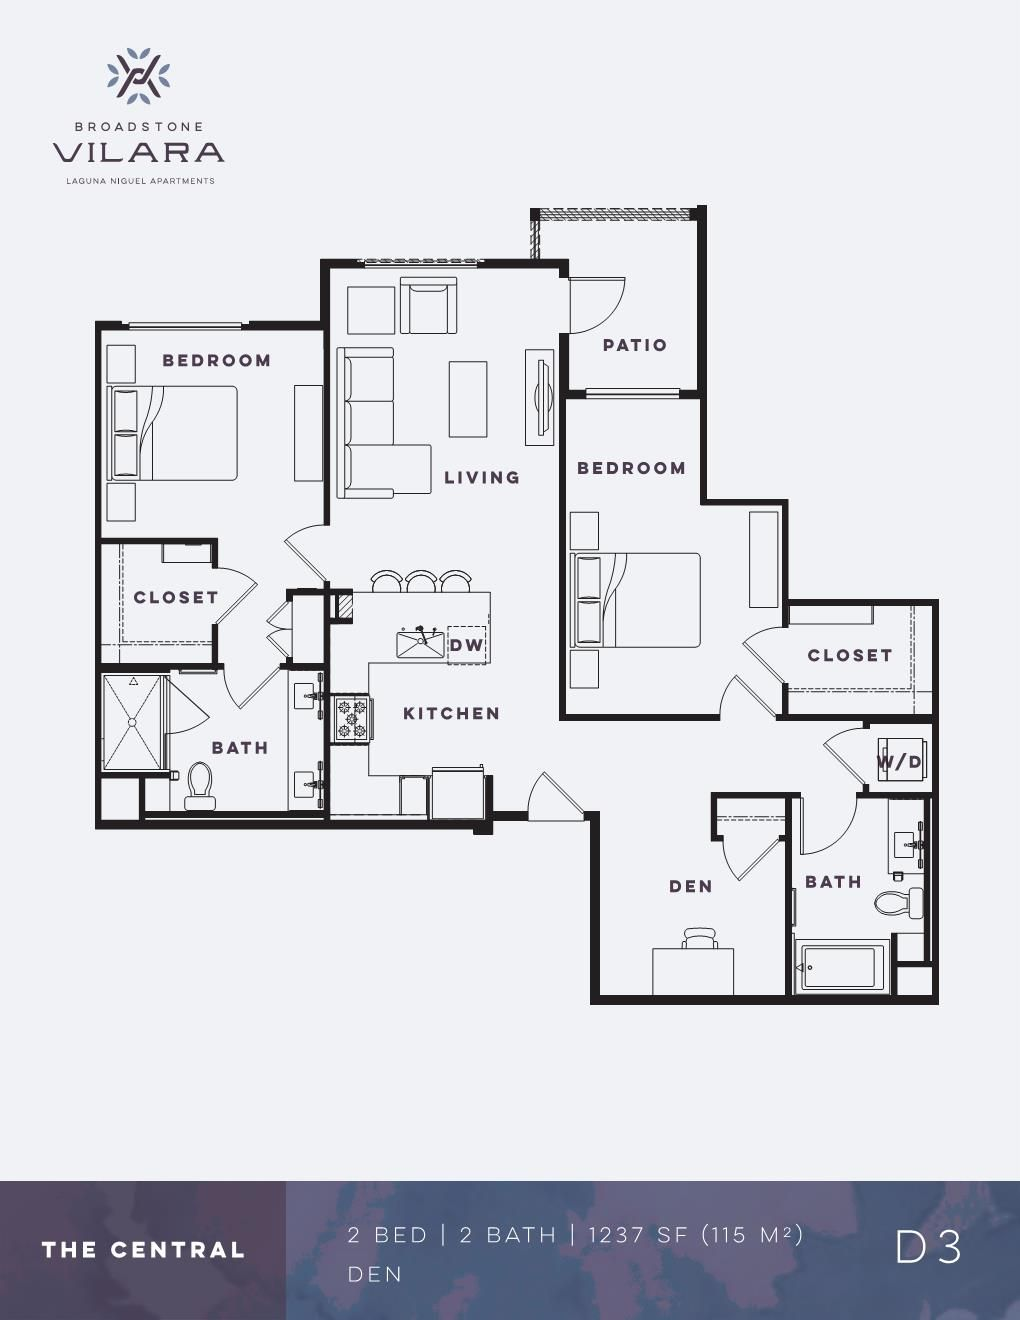 Two Bedroom Den Apartment The Central Broadstone Vilara Floor Plans Apartment Floor Plans Apartment Plans